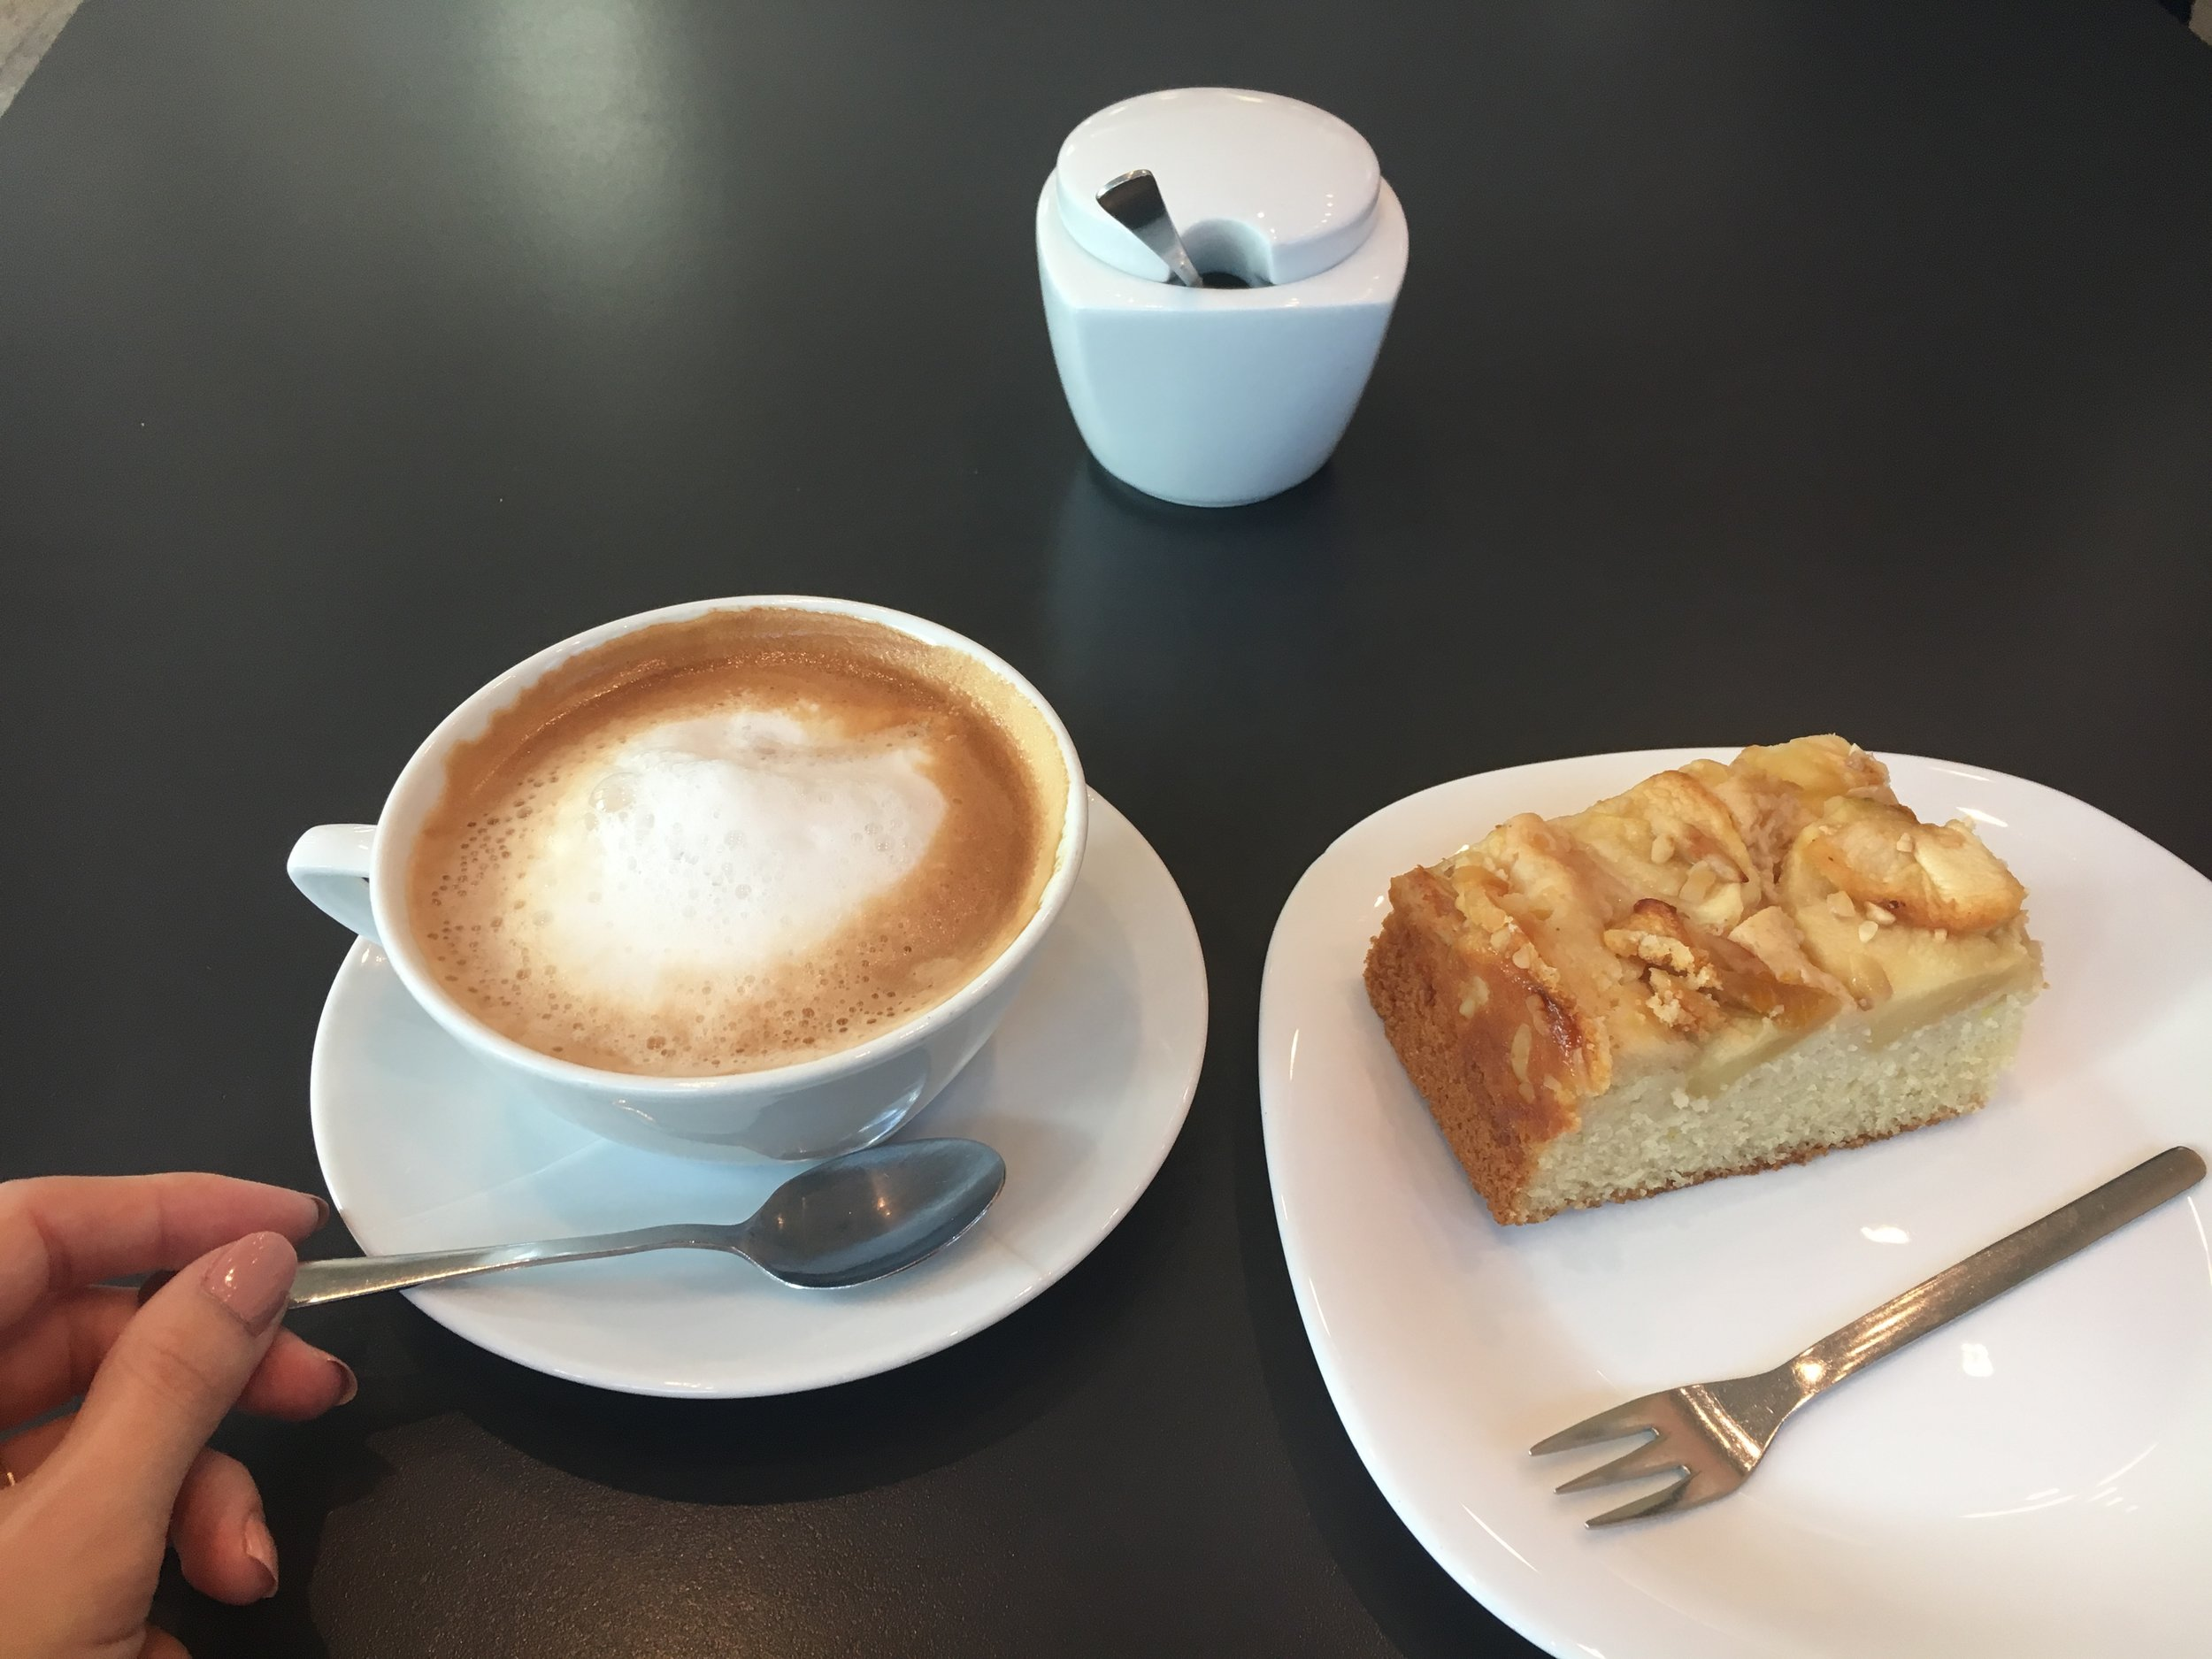 Scrumptious extra hot latte and  Apfelkuchen  or Apple Cake!